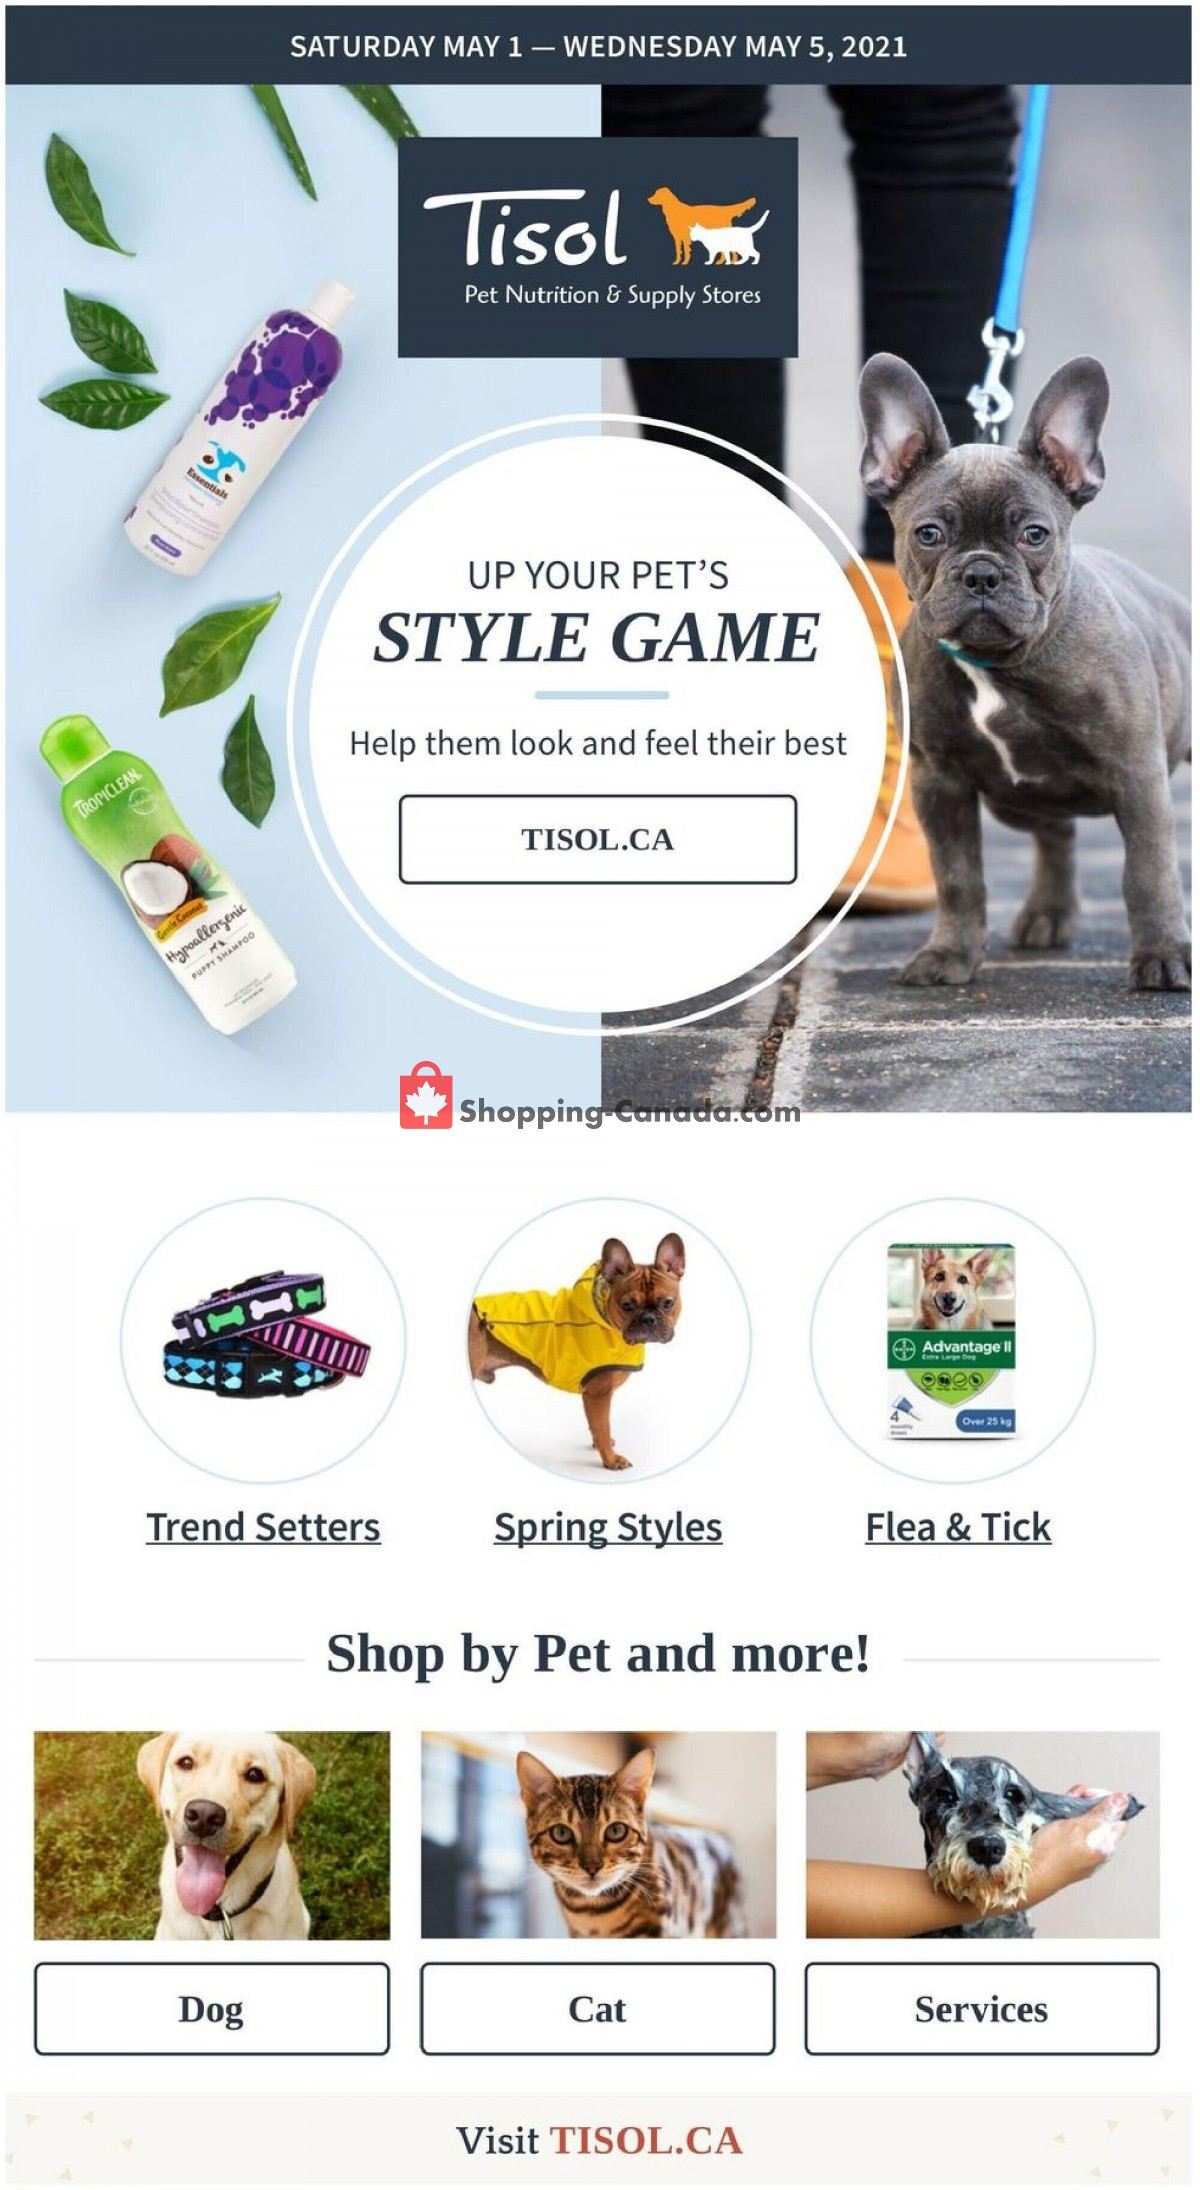 Flyer Tisol Pet Nutrition And Supply Stores Canada - from Saturday May 1, 2021 to Wednesday May 5, 2021